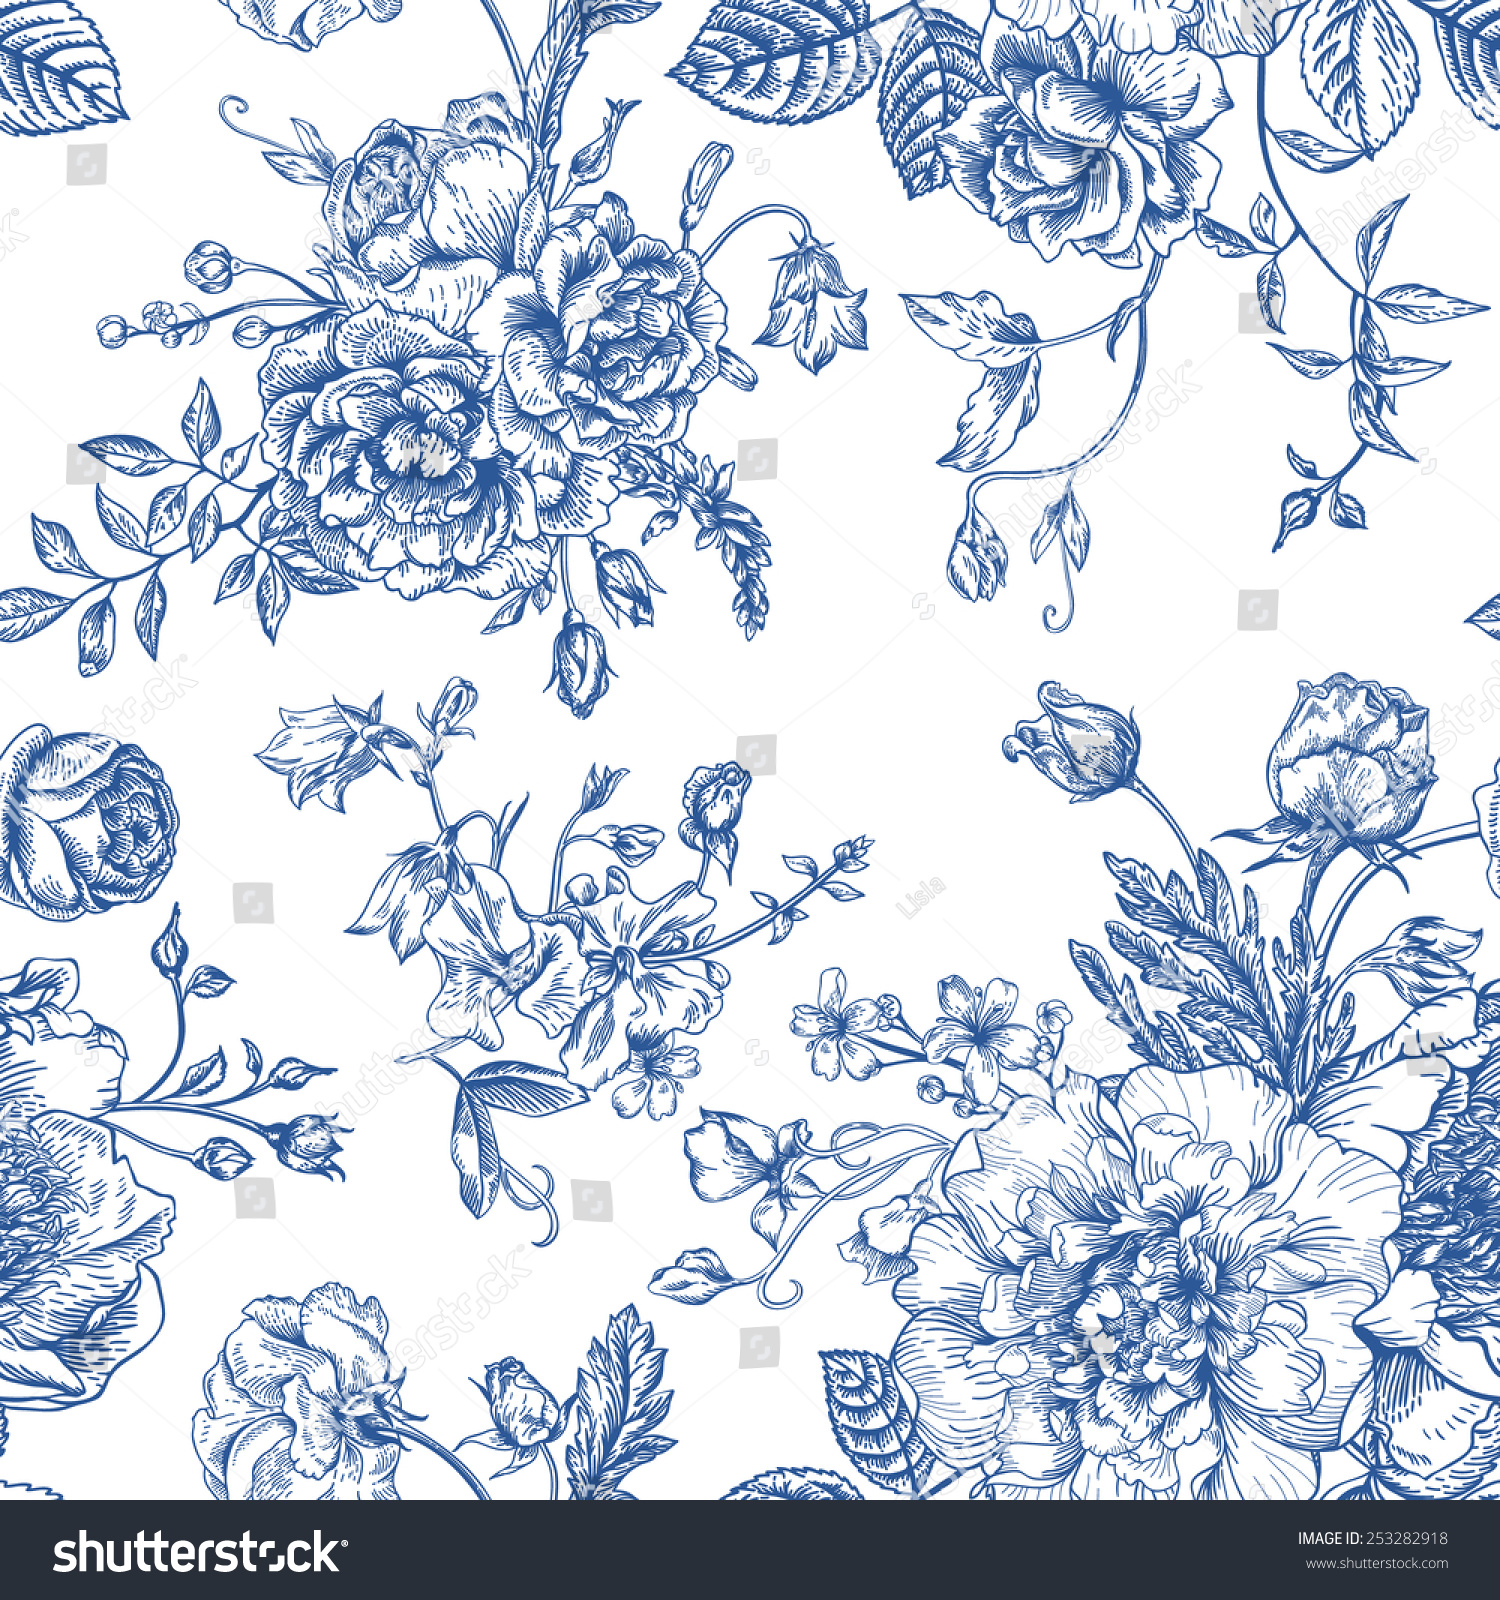 Royalty-free Seamless vector vintage pattern with